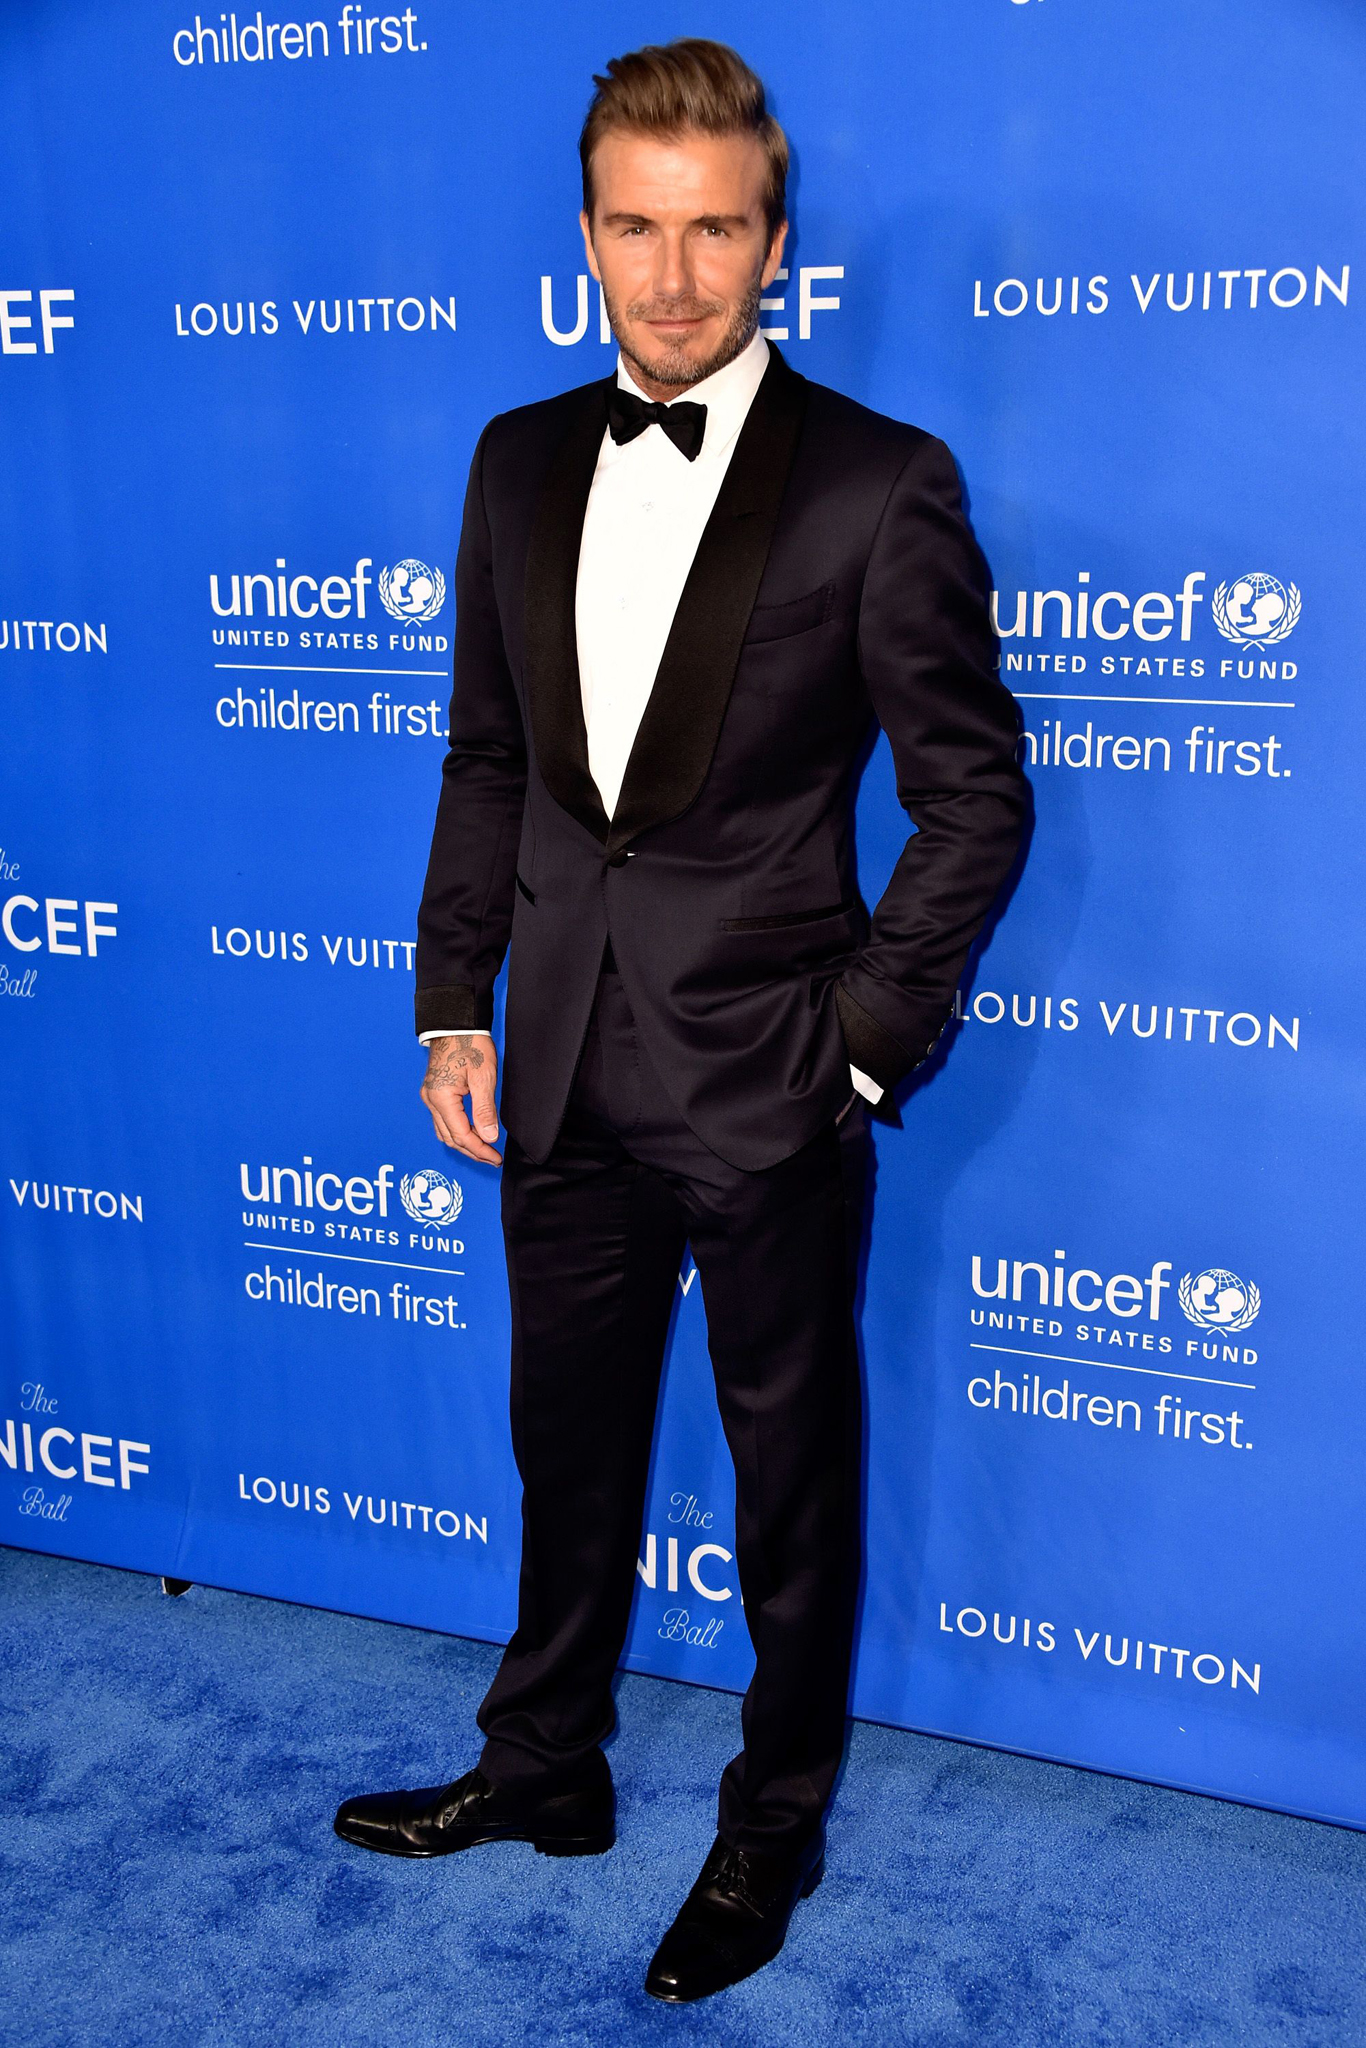 UNICEF Ball honoring David Beckham, Los Angeles, America - 12 Jan 2016